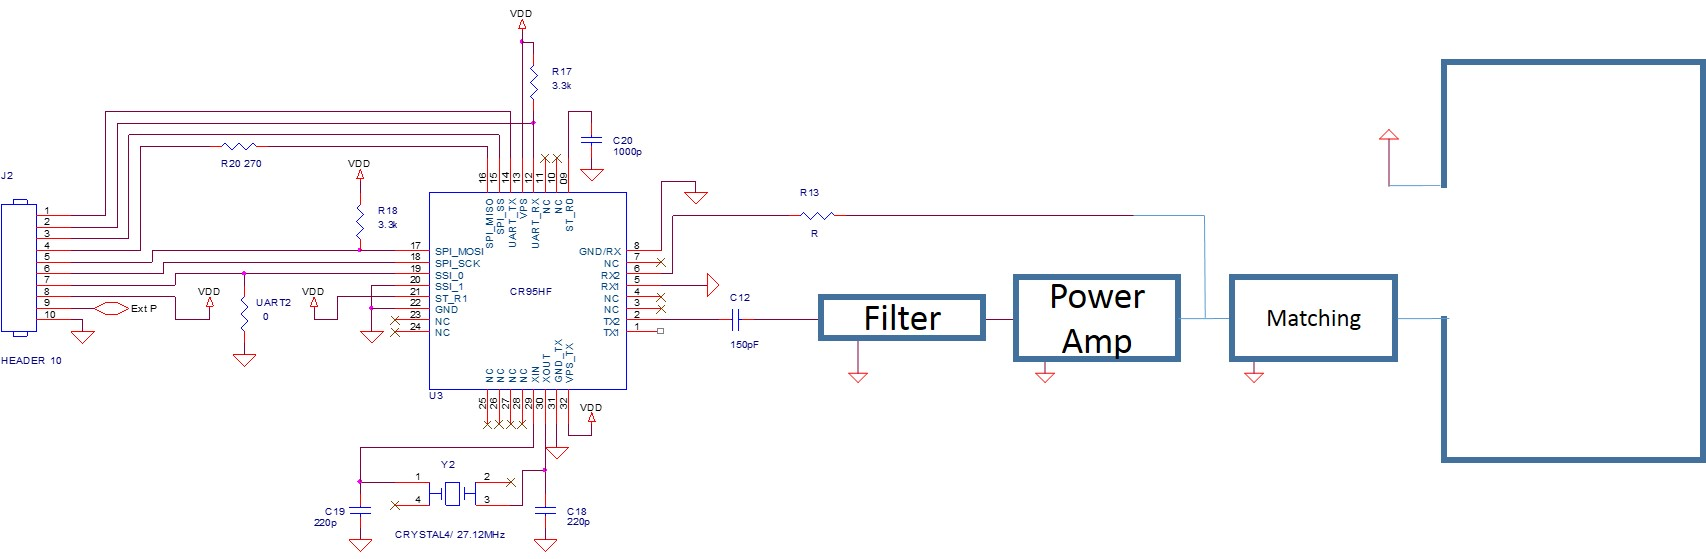 NFC chip with power amplifier  - Other wireless technologies